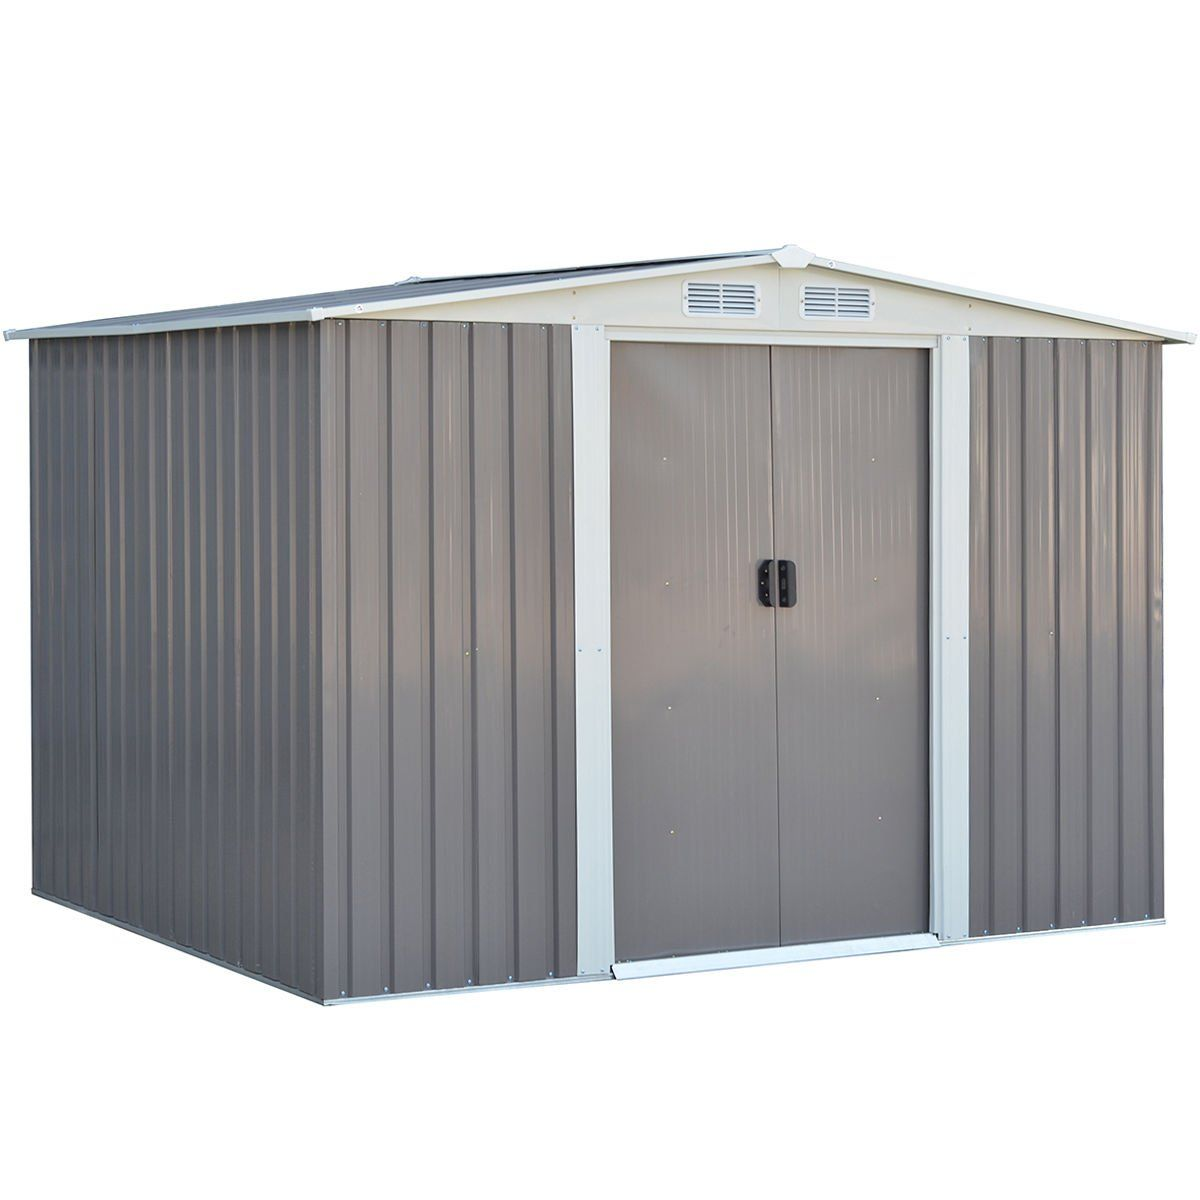 Goplus Galvanized Steel Outdoor Garden Storage Shed 6 X 8 Ft Heavy Duty Tool House W Sliding D Small Outdoor Storage Outdoor Storage Sheds Garden Storage Shed